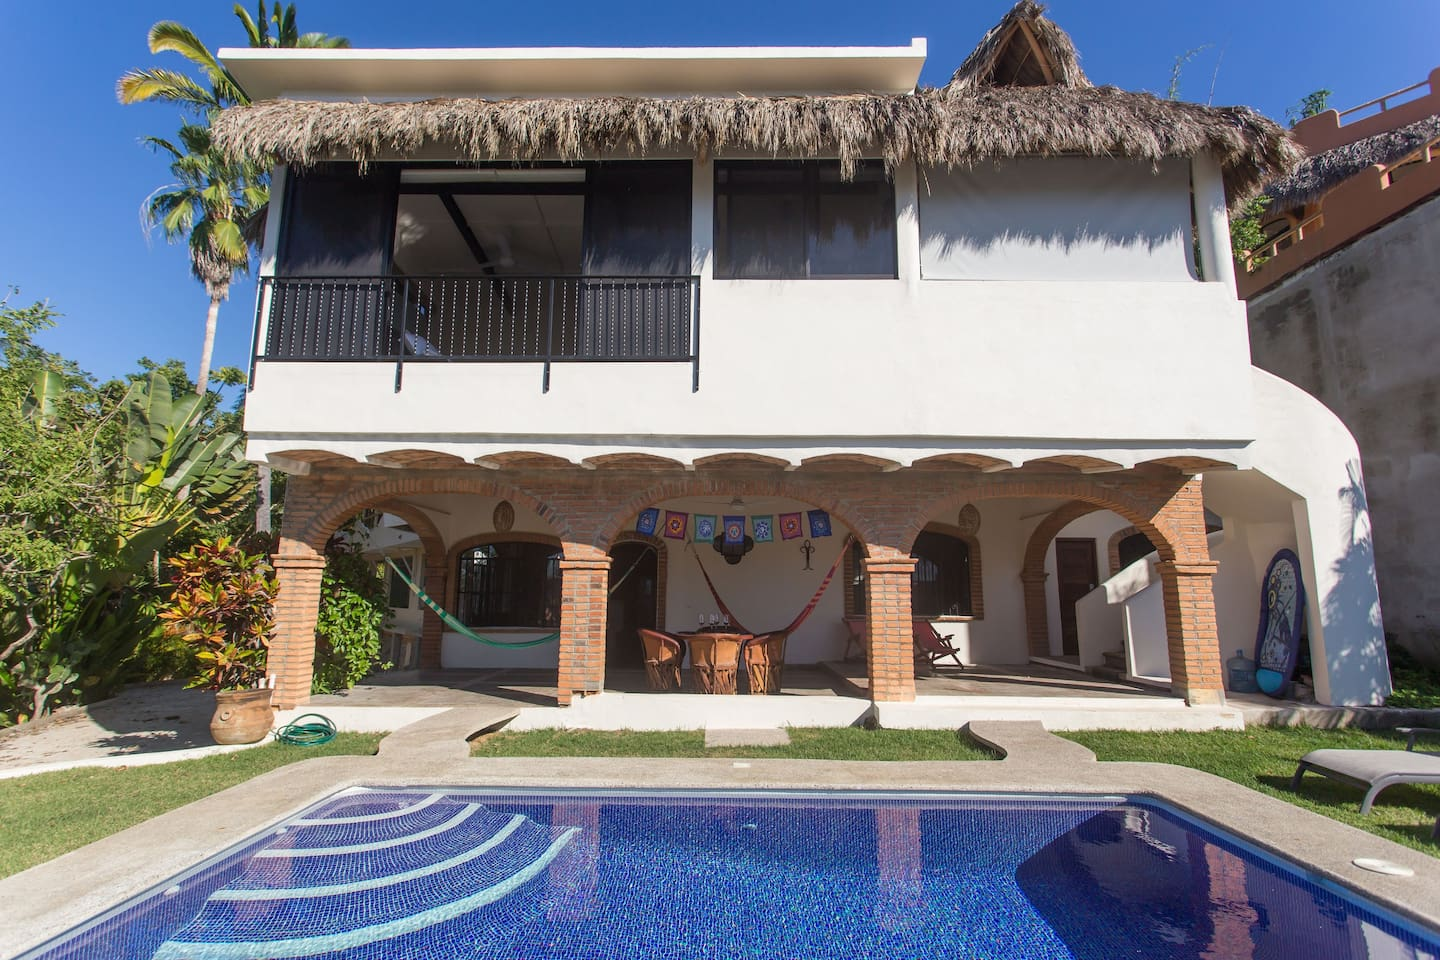 Casa Tecolote is the main 2 bedroom house on the first floor.  I live in the apartment above it.